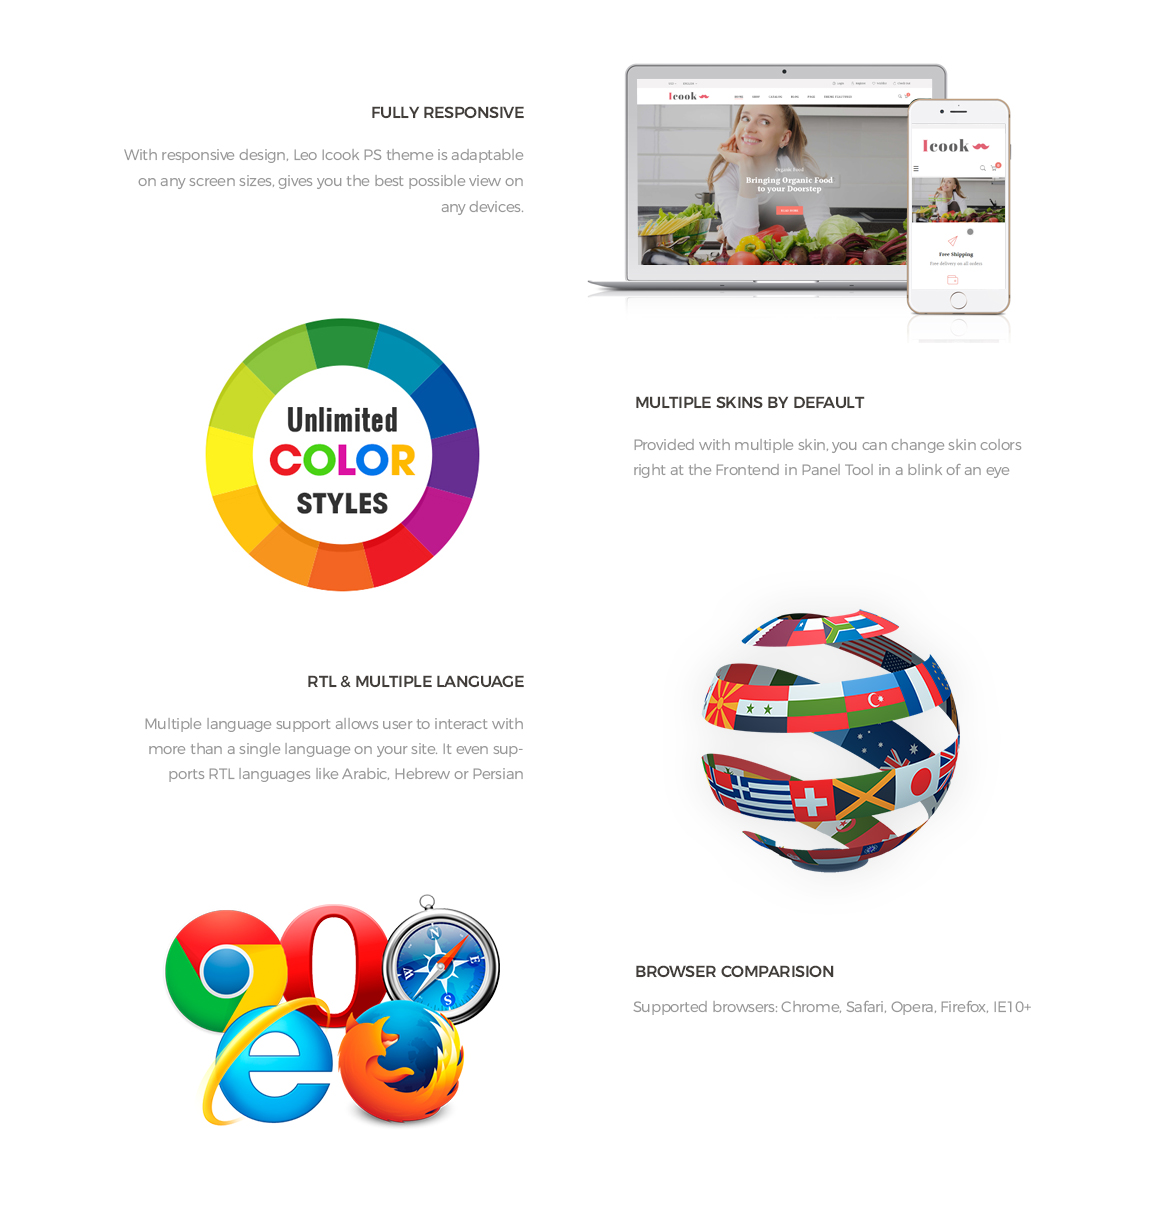 Prestashop 1.7 theme features-Leo ICook Prestashop Theme - Kitchen Tool, Cookware, Kitchenware